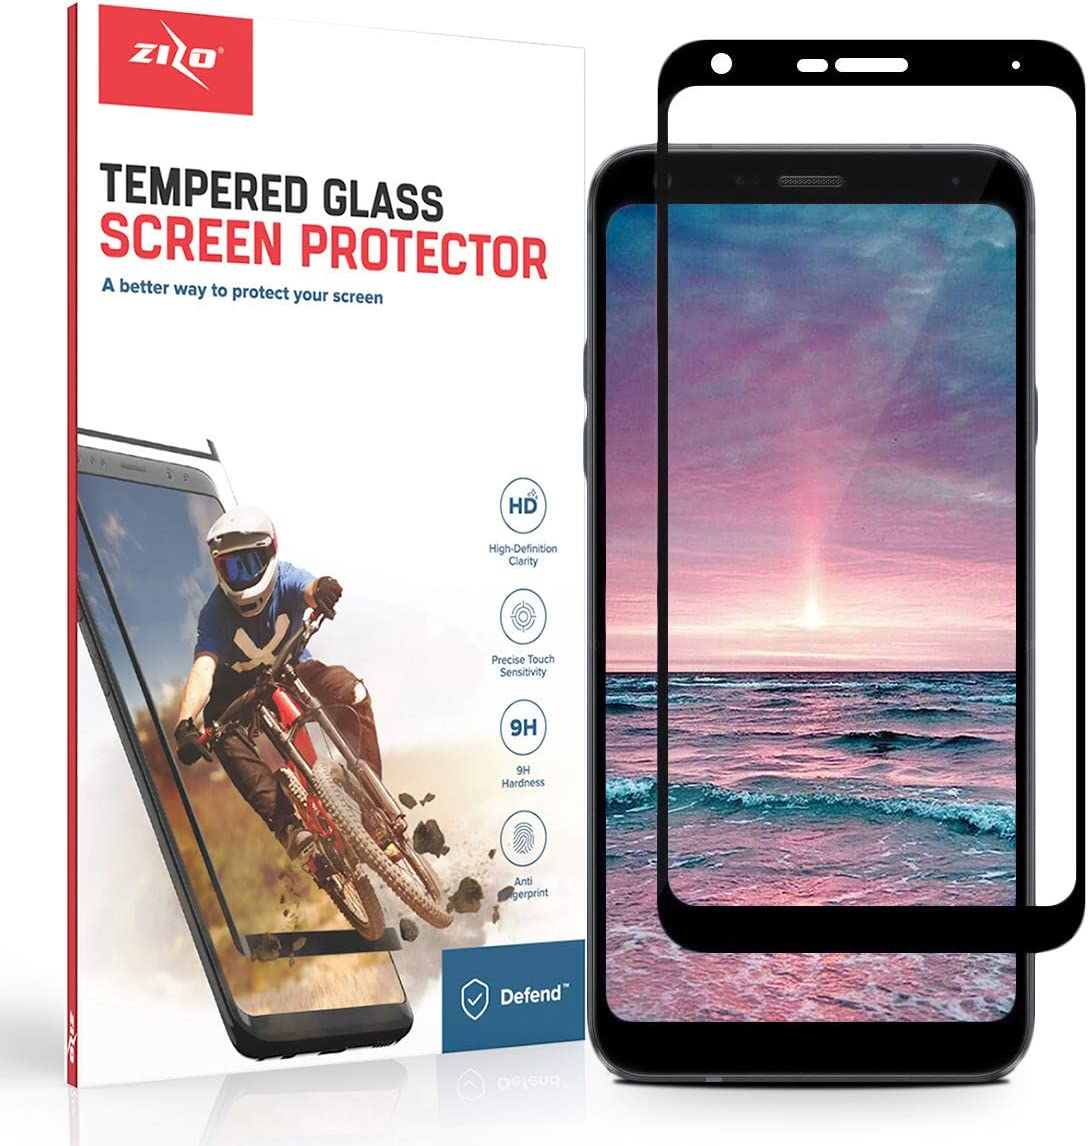 Screen Protector with Anti Scratch with 9H Hardness LG Q7 Plus Black Zizo Full Glue Curved Glass Compatible with LG Q7